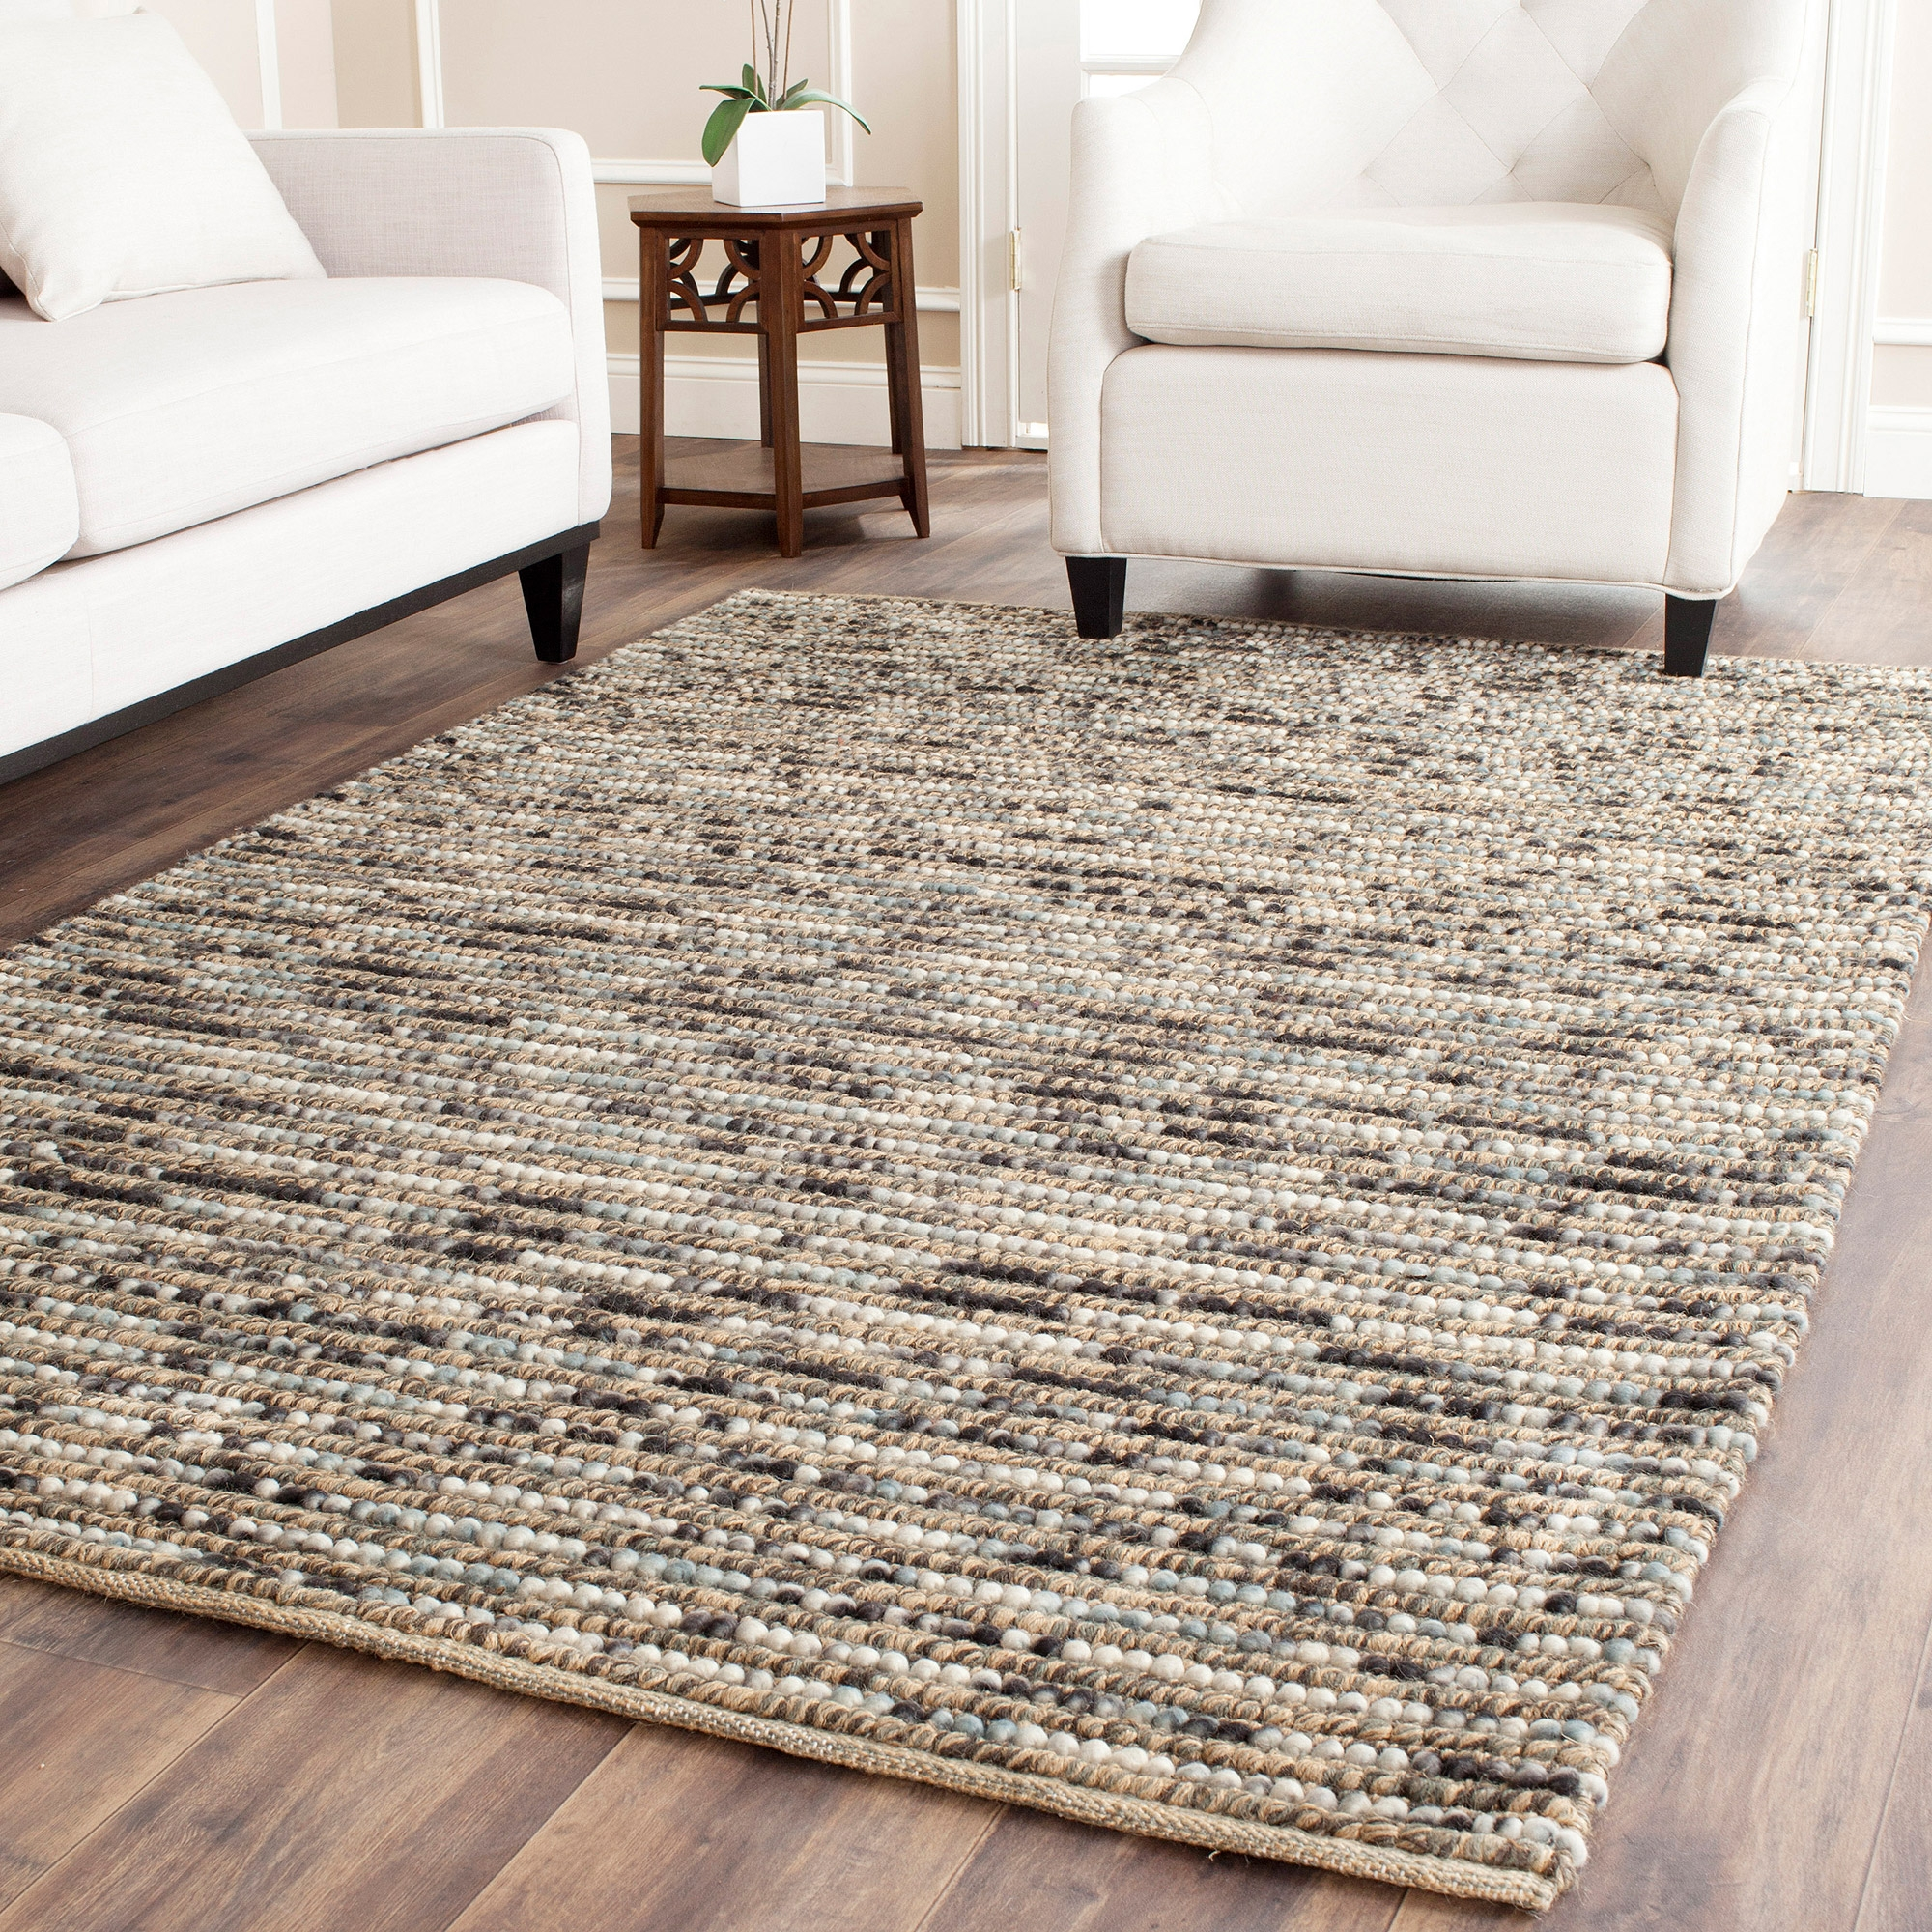 Por Photo Of Wool Jute Area Rugs